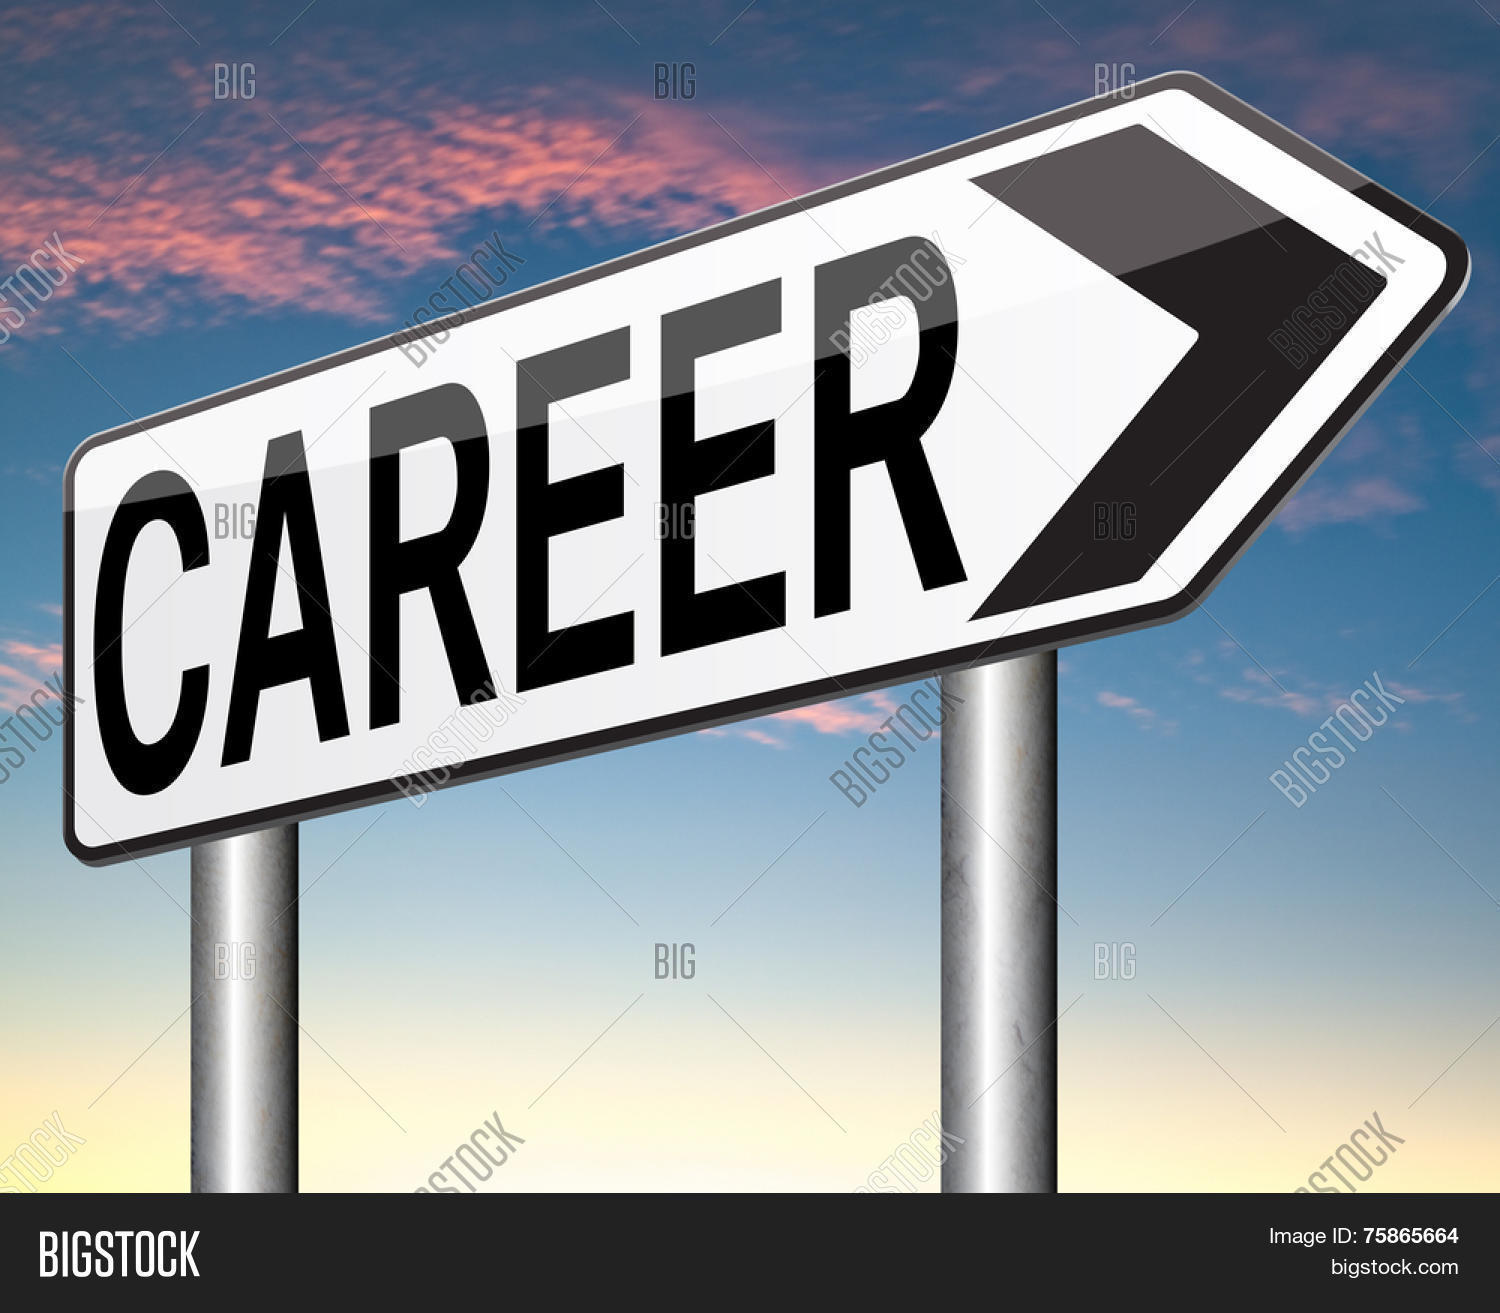 career change or move careerist new job opportunity stock photo career change or move careerist new job opportunity